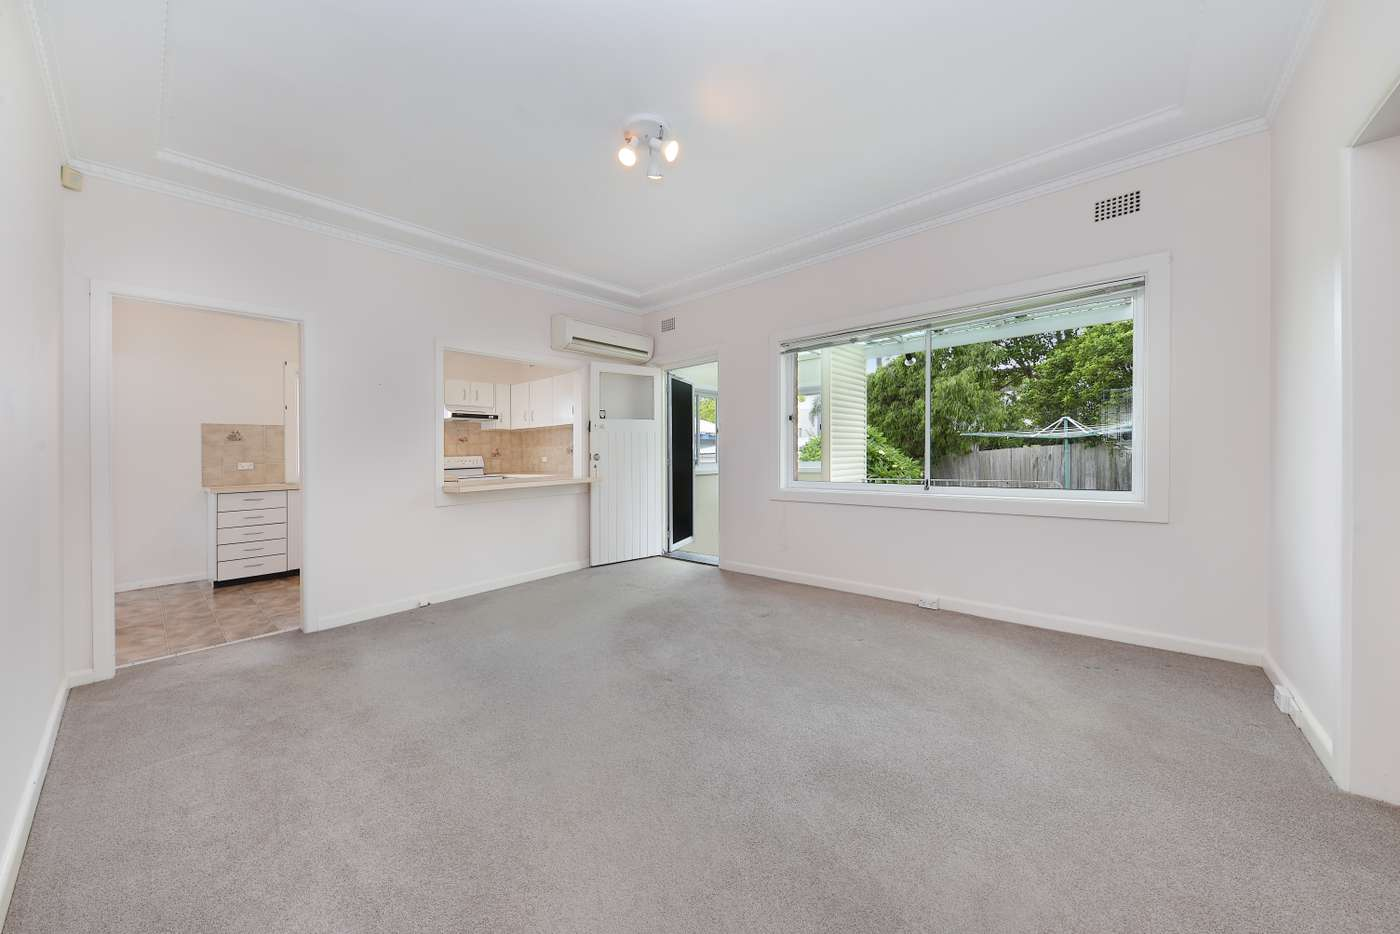 Sixth view of Homely house listing, 37 Napier Street, Malabar NSW 2036